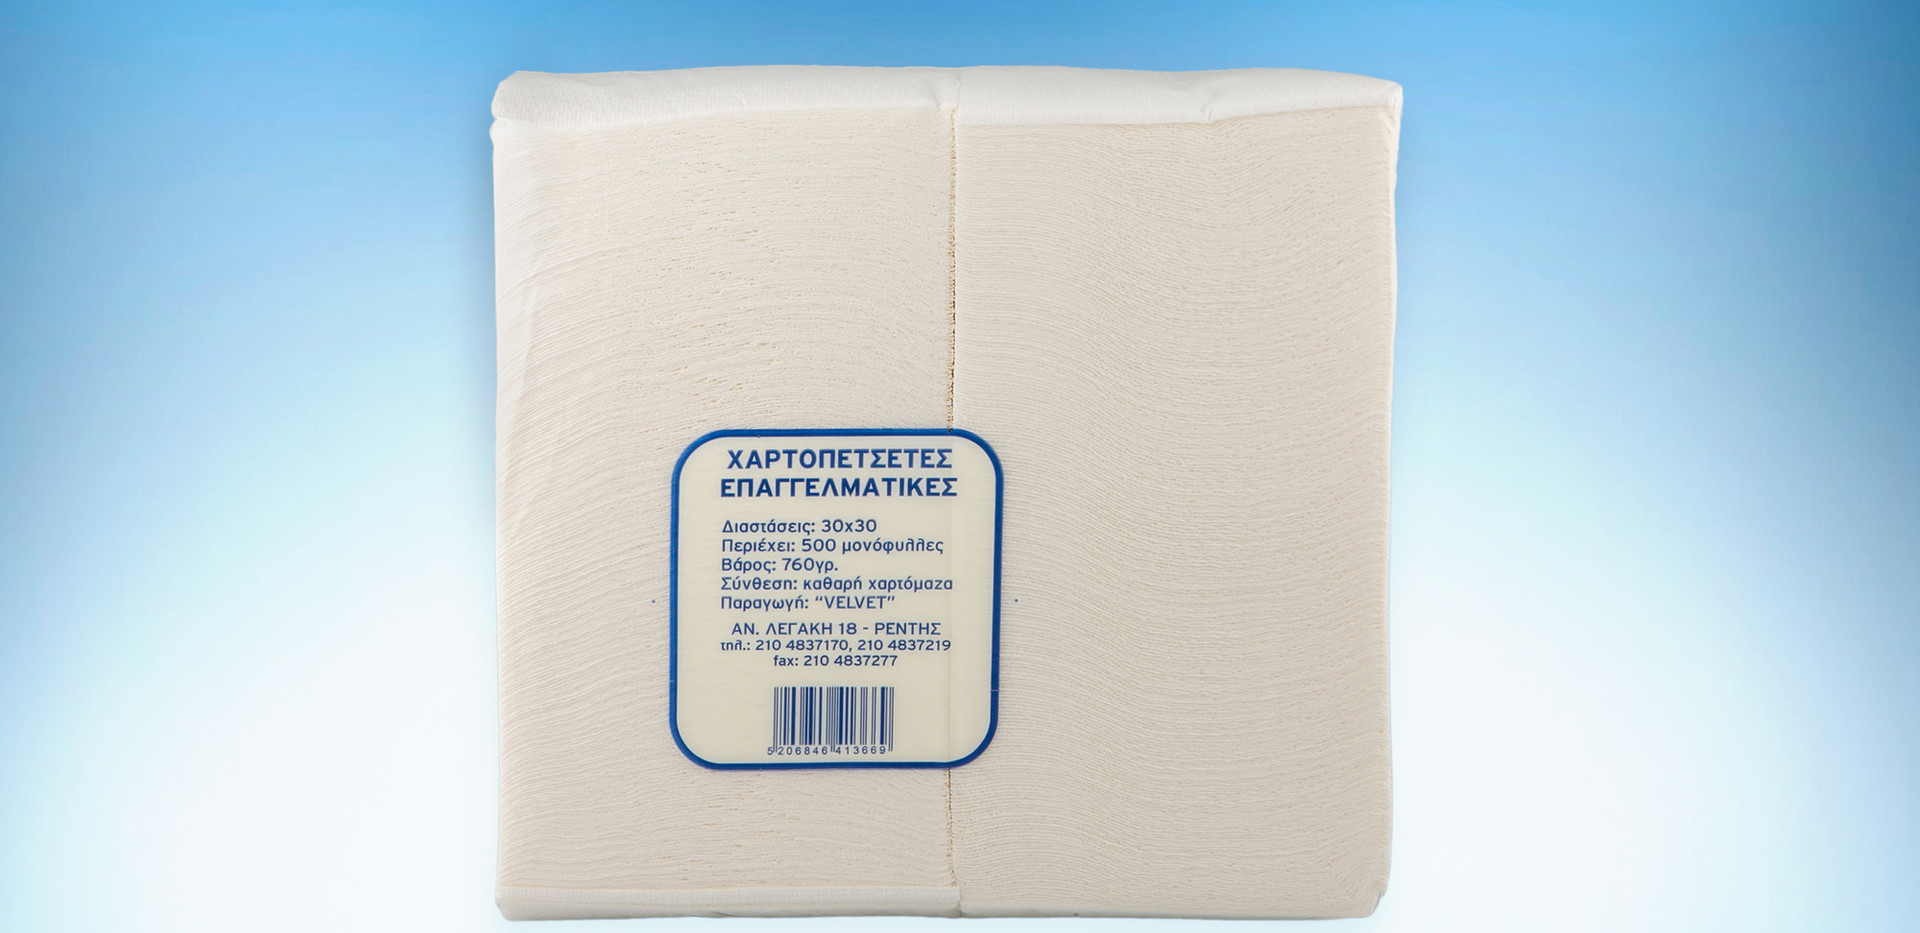 Napkins for professional and home use